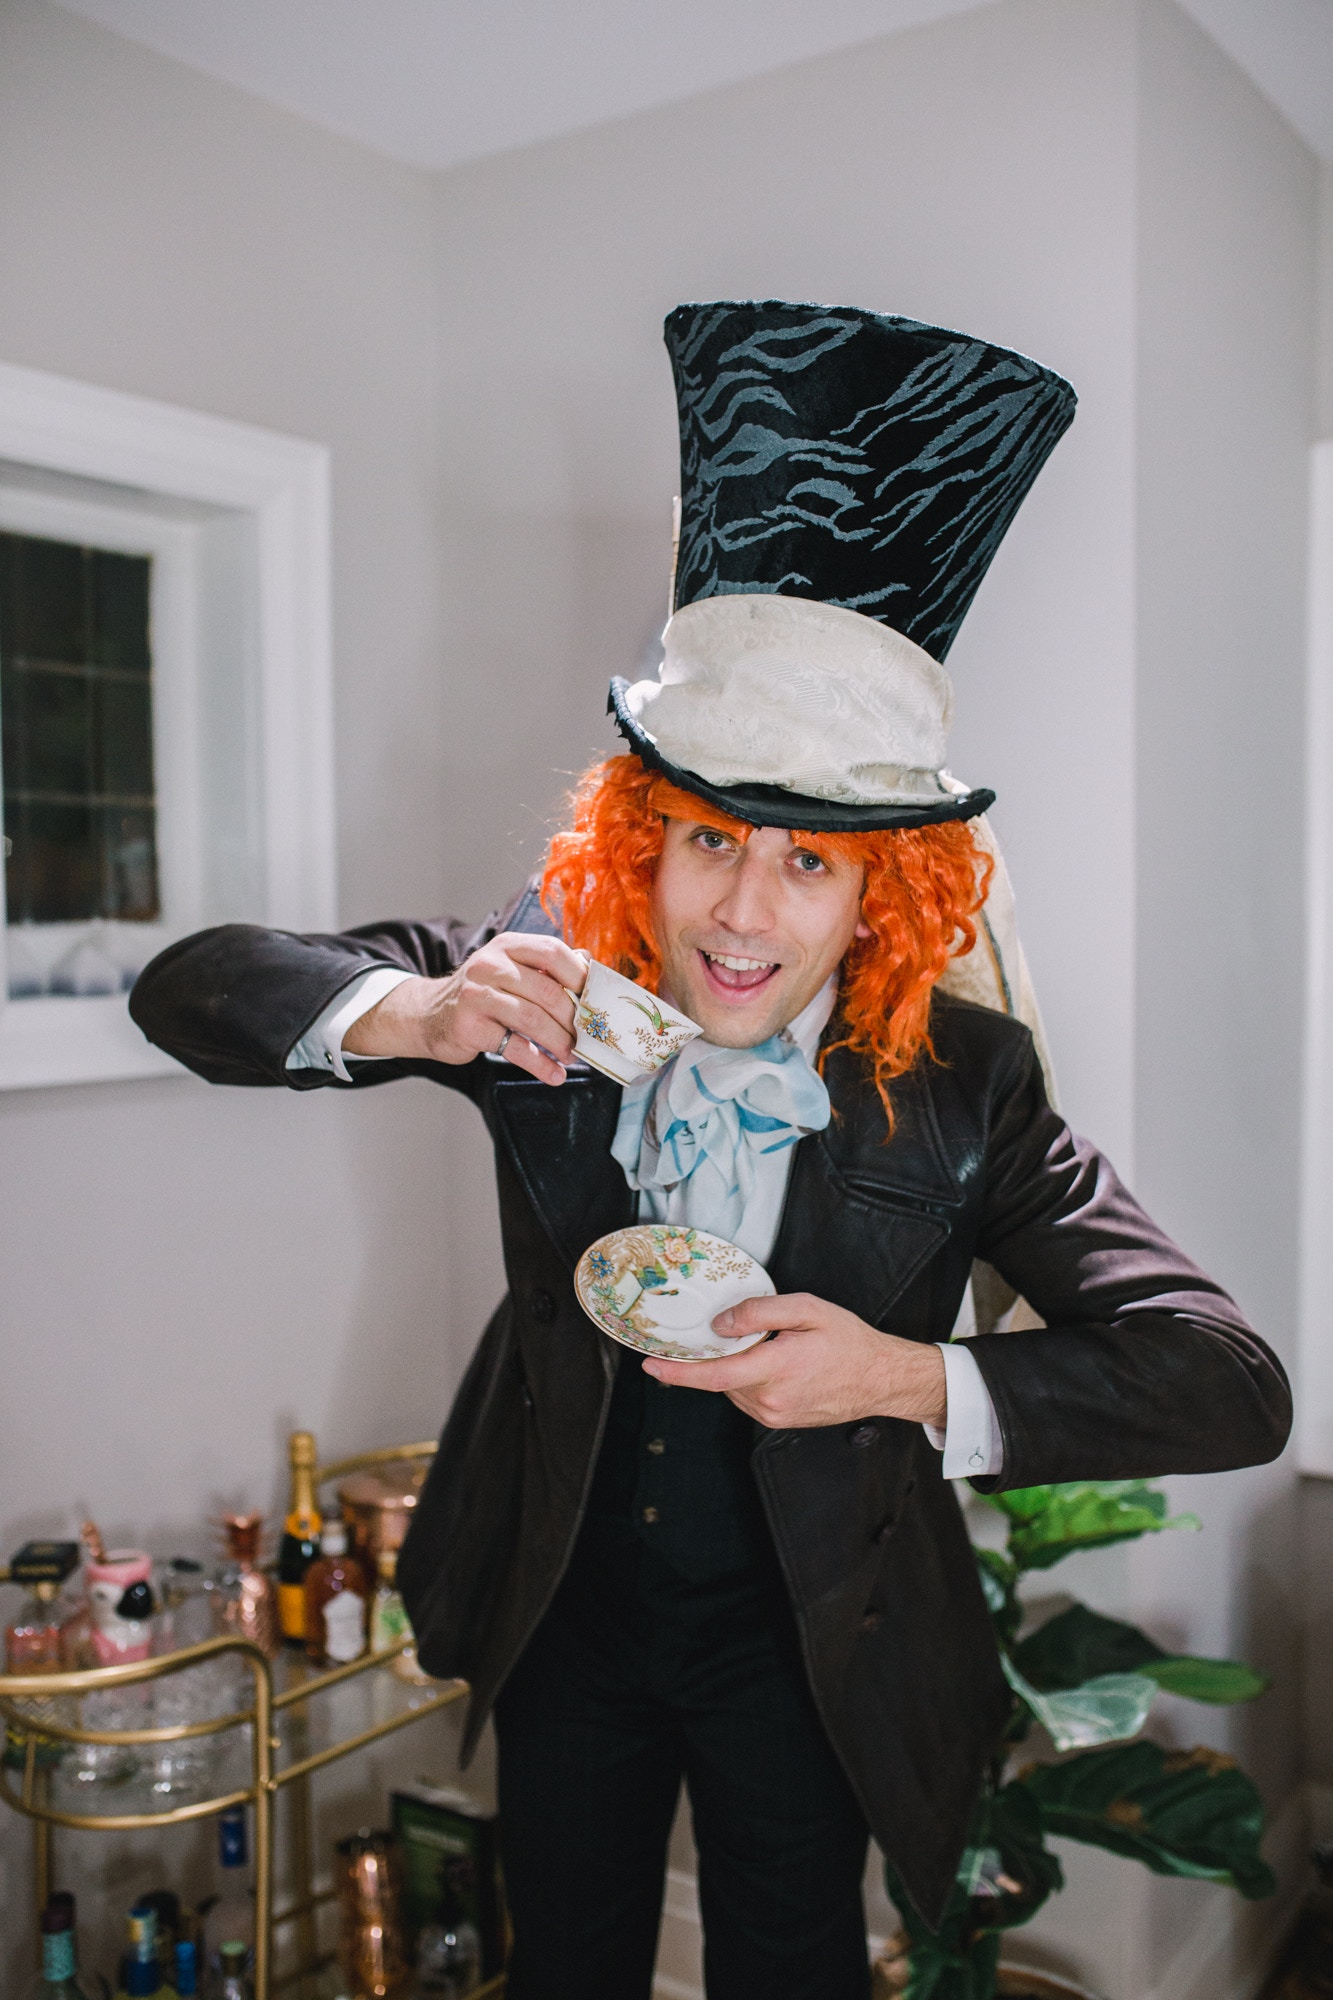 DIY Mad Hatter Alice in Wonderland Costume idea: a guide on how to make a realistic Mad Hatter hat and costume